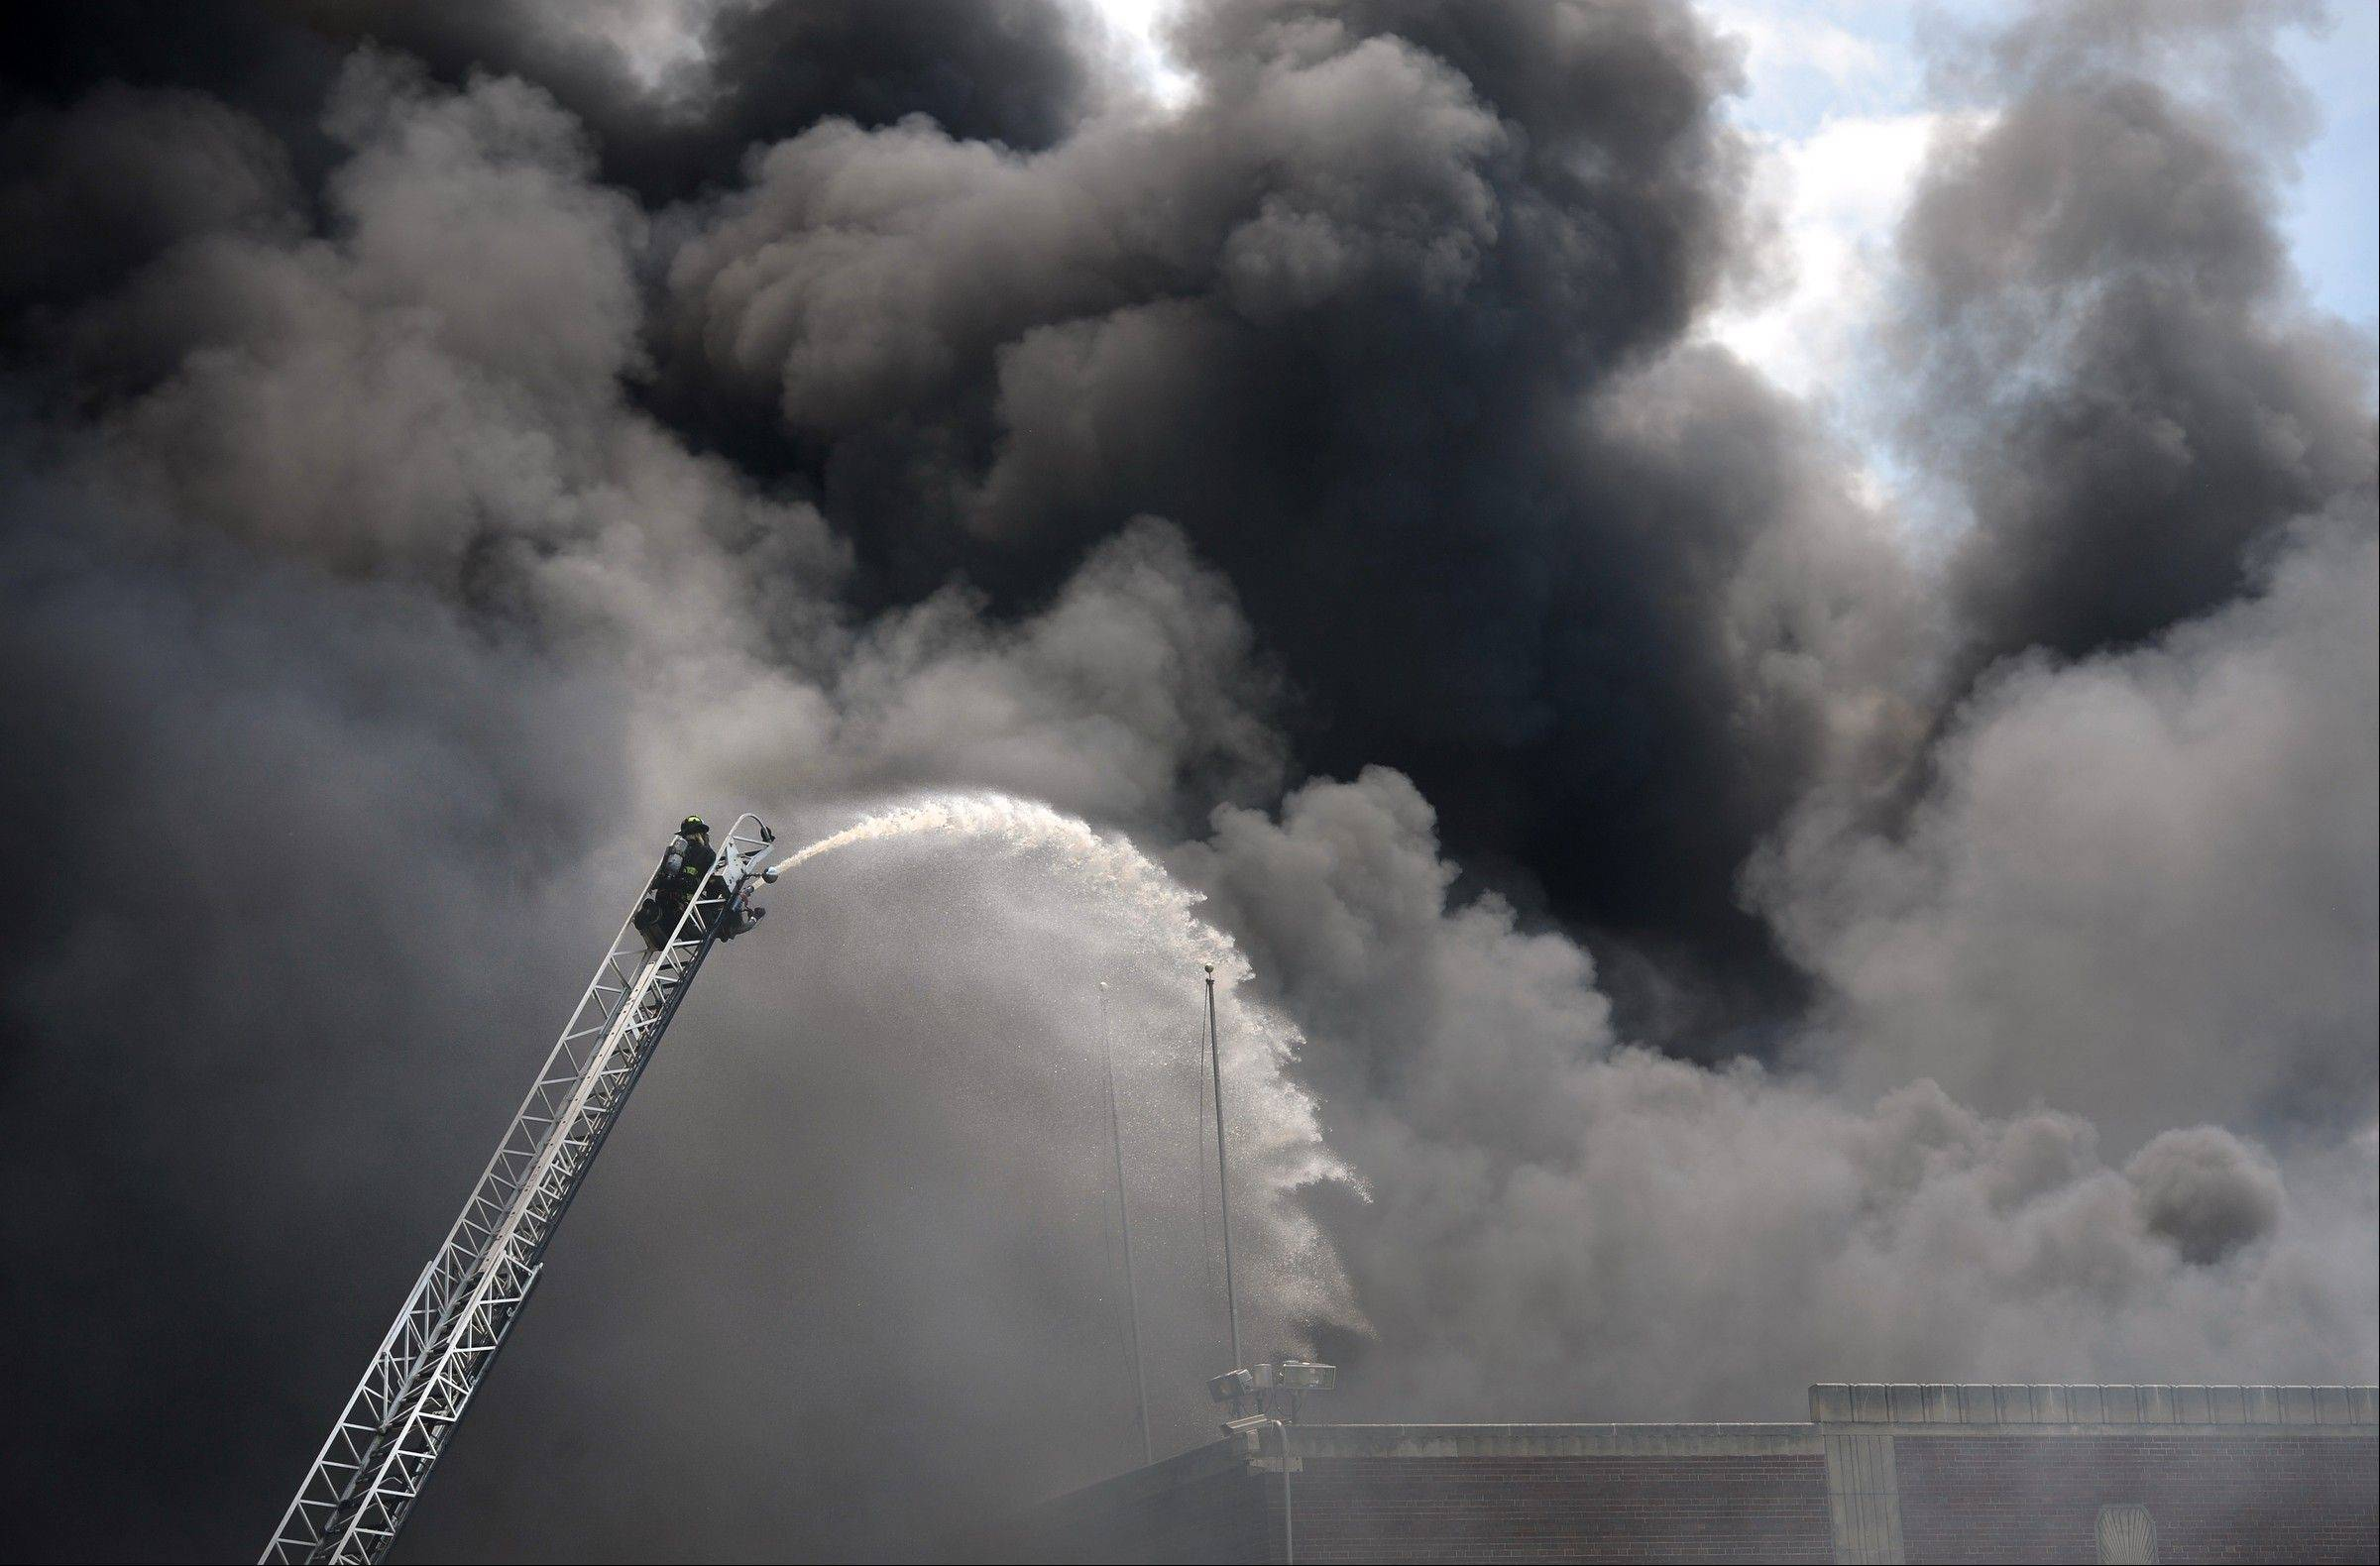 Firefighters spray water on a large fire Saturday in Indianapolis. An estimated 150 firefighters were battling the blaze Saturday afternoon in the building about one mile southwest of the city's downtown.